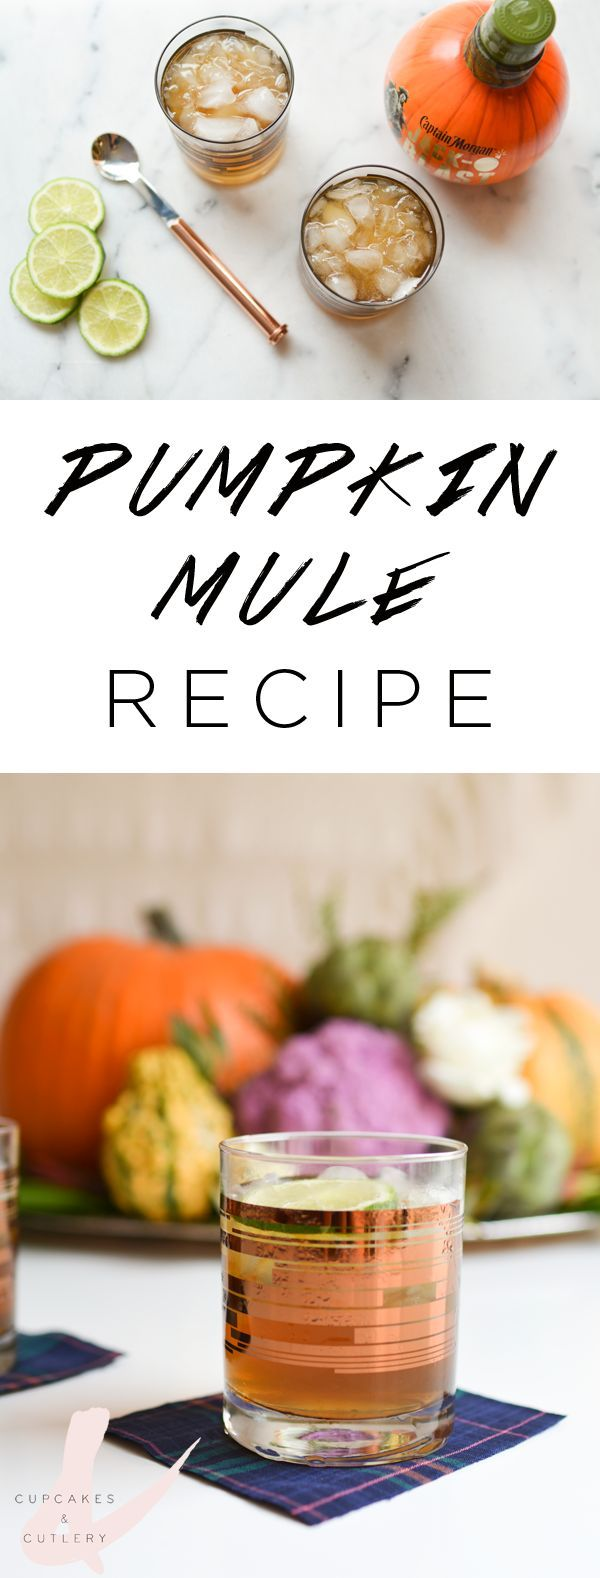 Looking for the perfect fall cocktail idea to serve at Halloween or Thanksgiving? This Pumpkin Moscow Mule recipe is quick and easy!